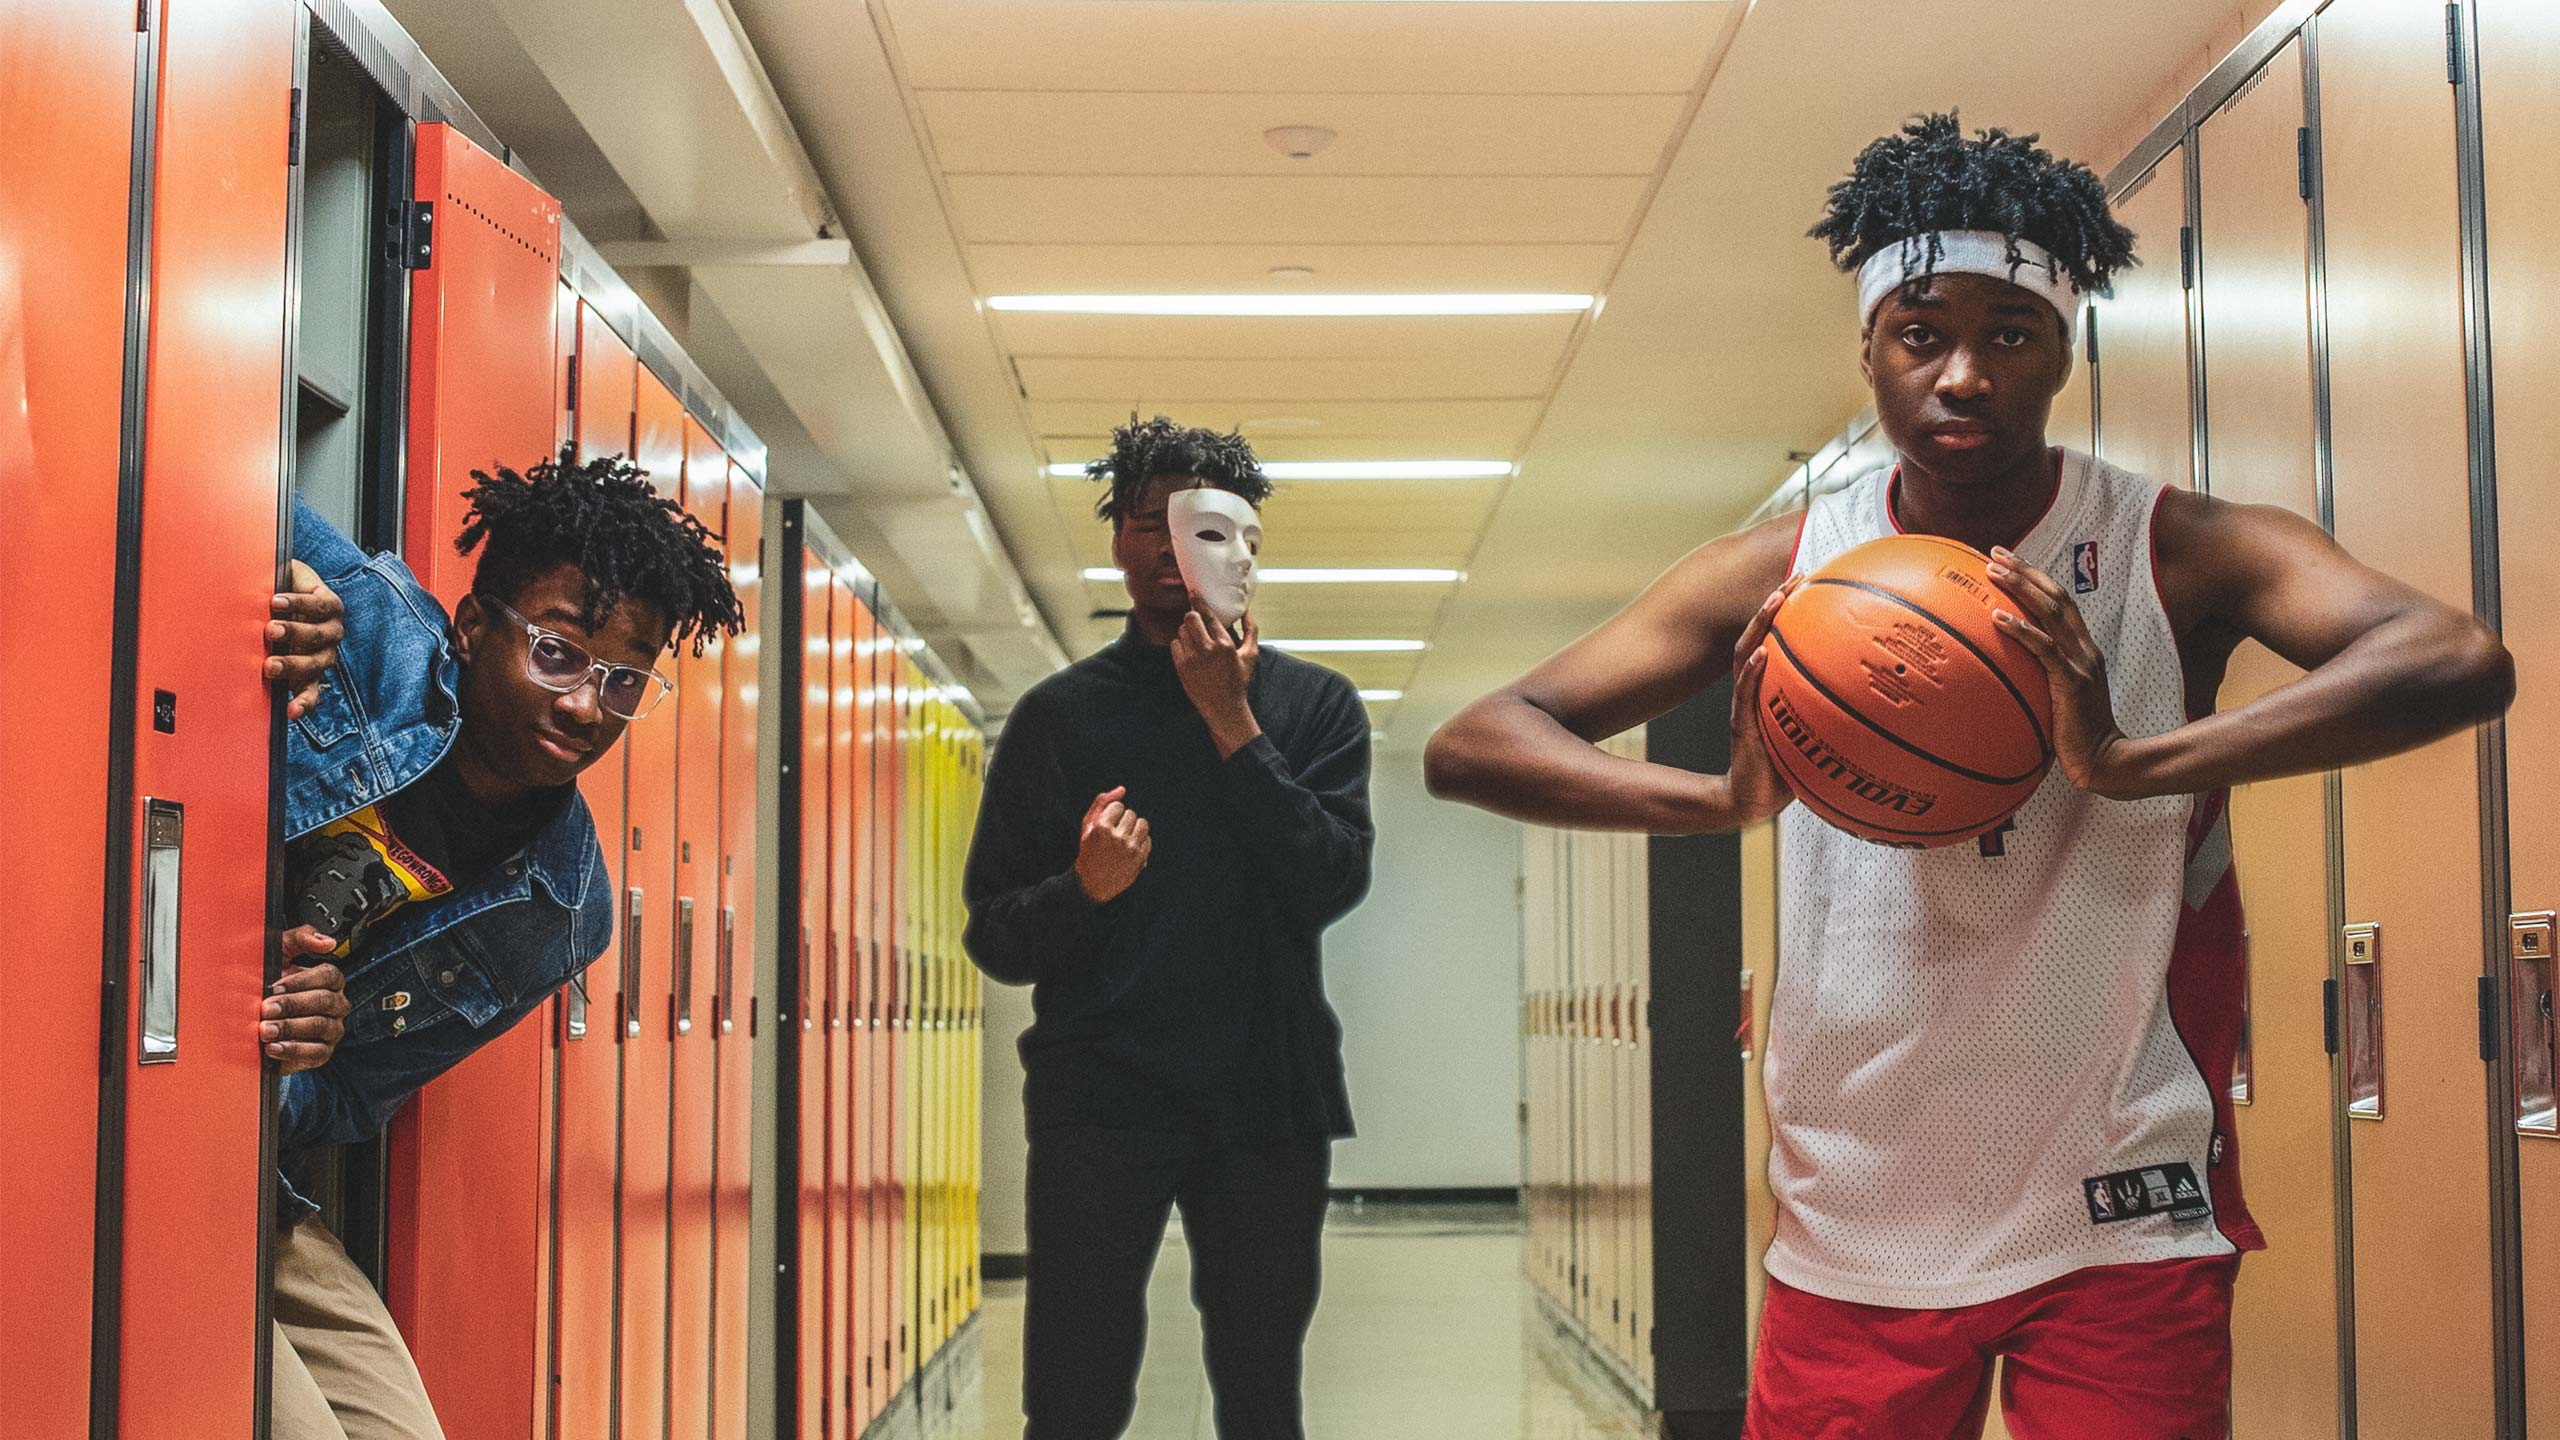 3 versions of the same student with different personalities line the halls of Ryerson. One is a jock holding a basketball, one is an artist holding a theatre mask, and one is a nerd stuffed in a locker.